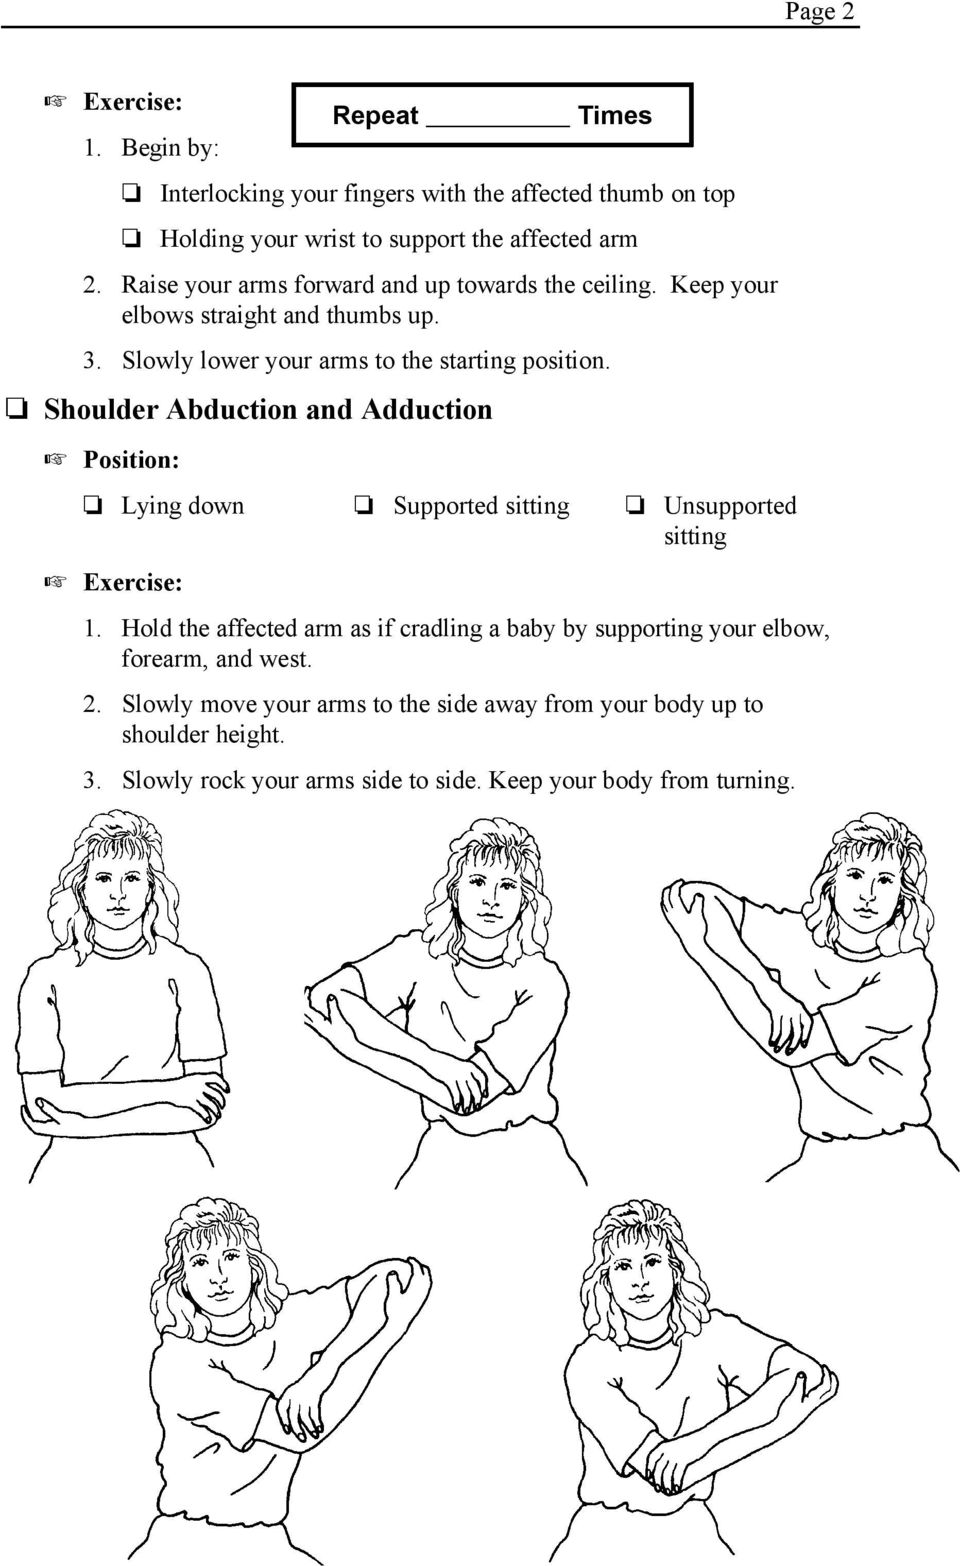 Self-Range of Motion Exercises for Shoulders, Arms, Wrists